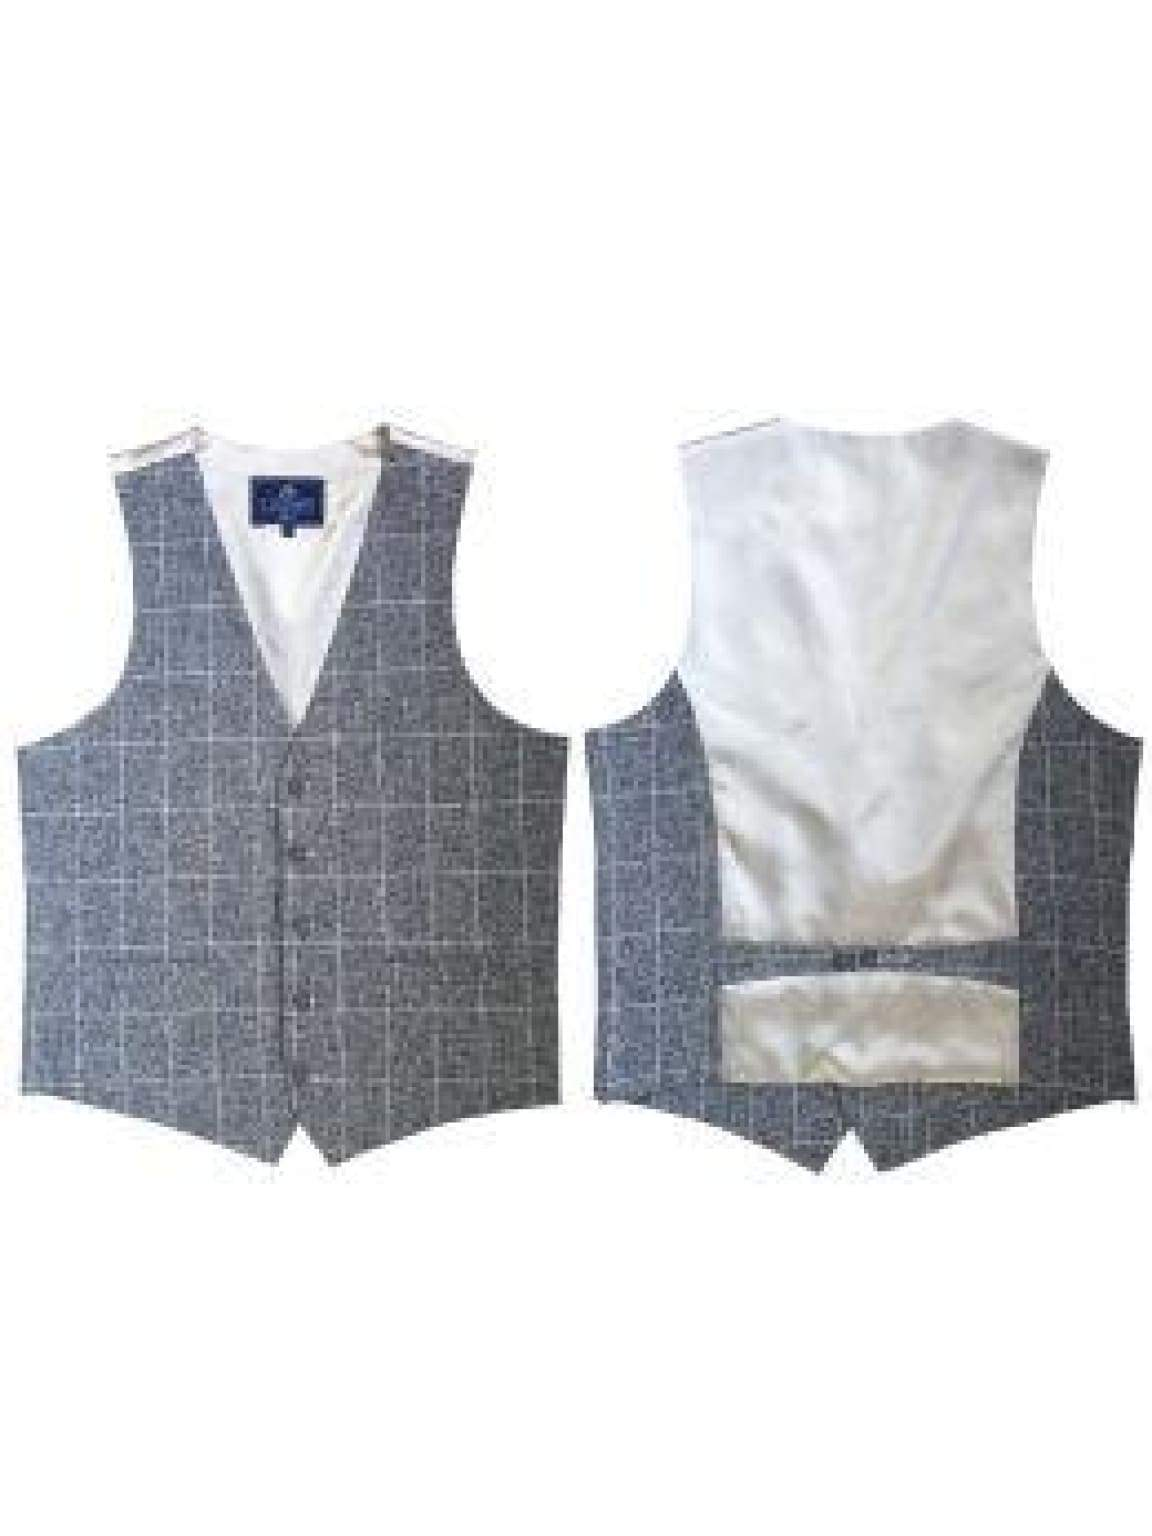 L A Smith Linen-Look Grey Modern Fit Waistcoat - 34 Chest - Suit & Tailoring